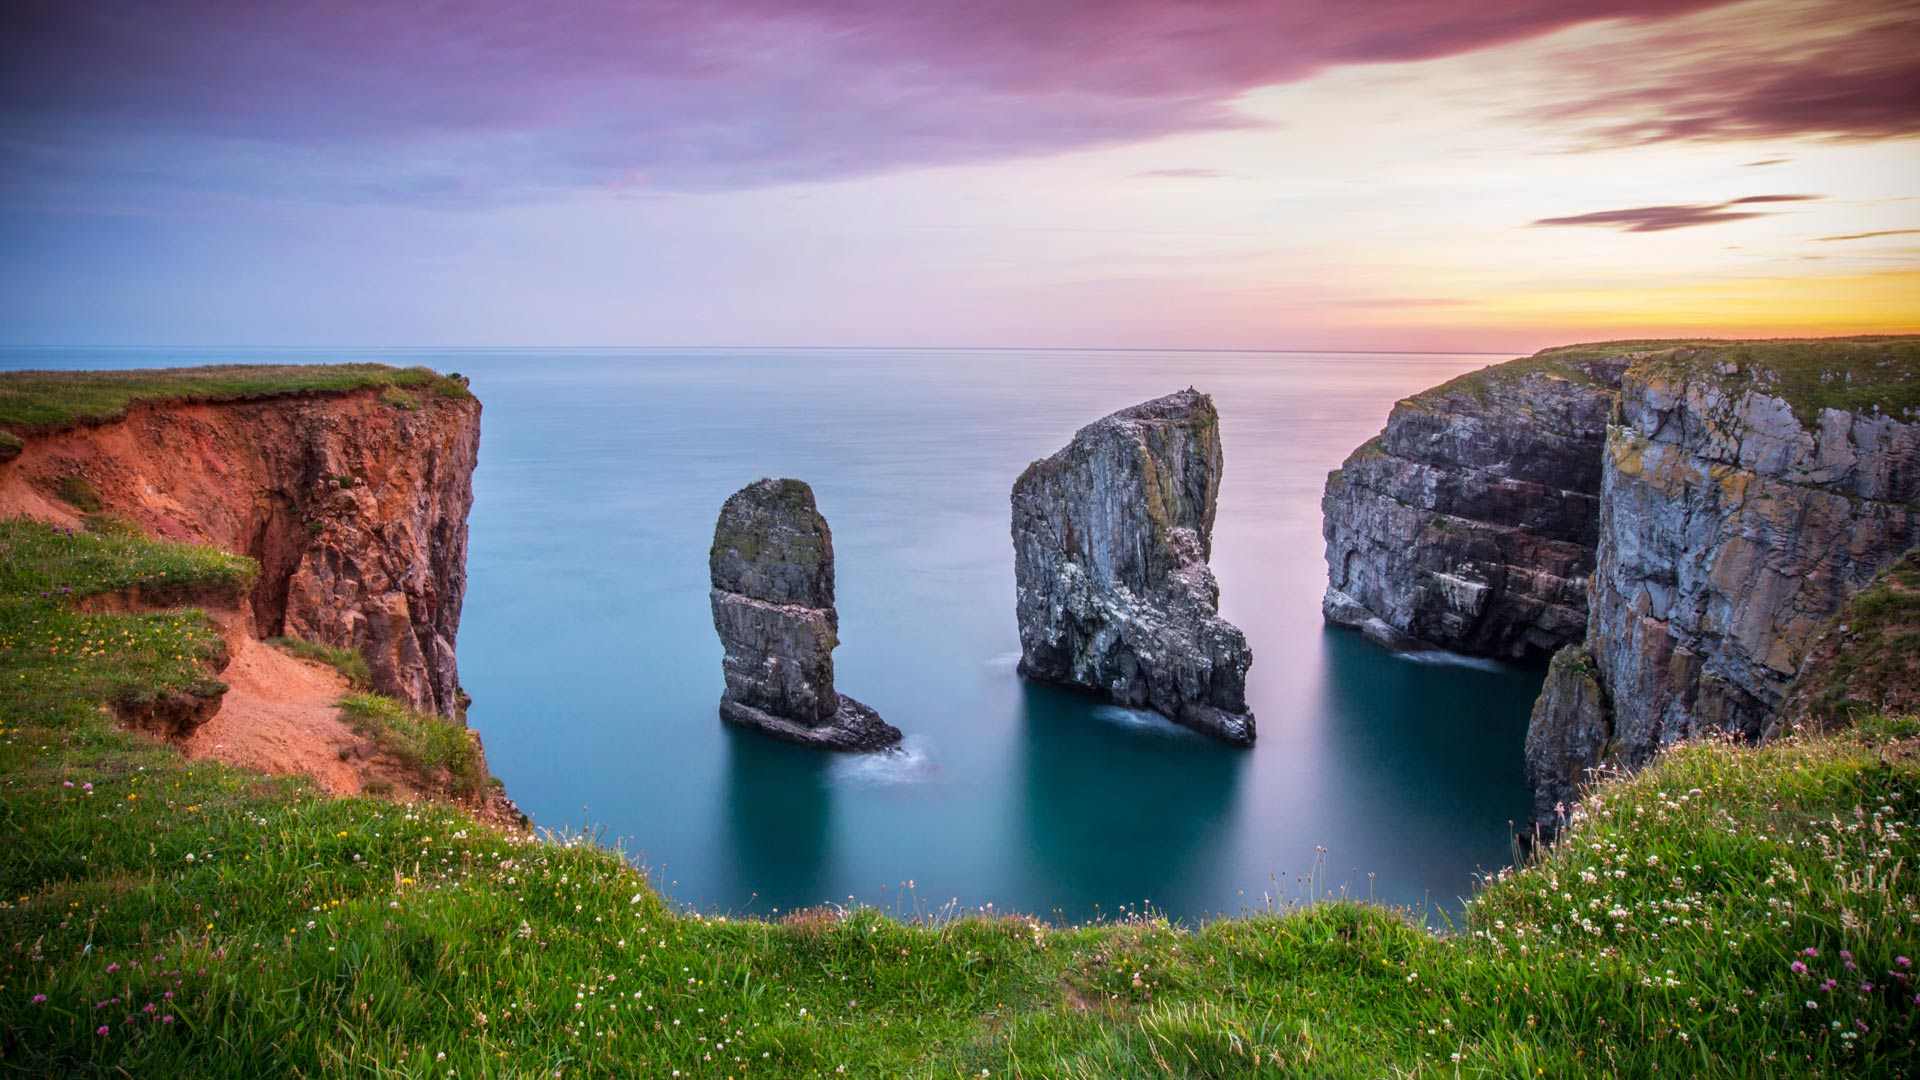 Stack Rocks at Castlemartin on the Pembrokeshire coastline, Wales (© James Davies/Alamy)